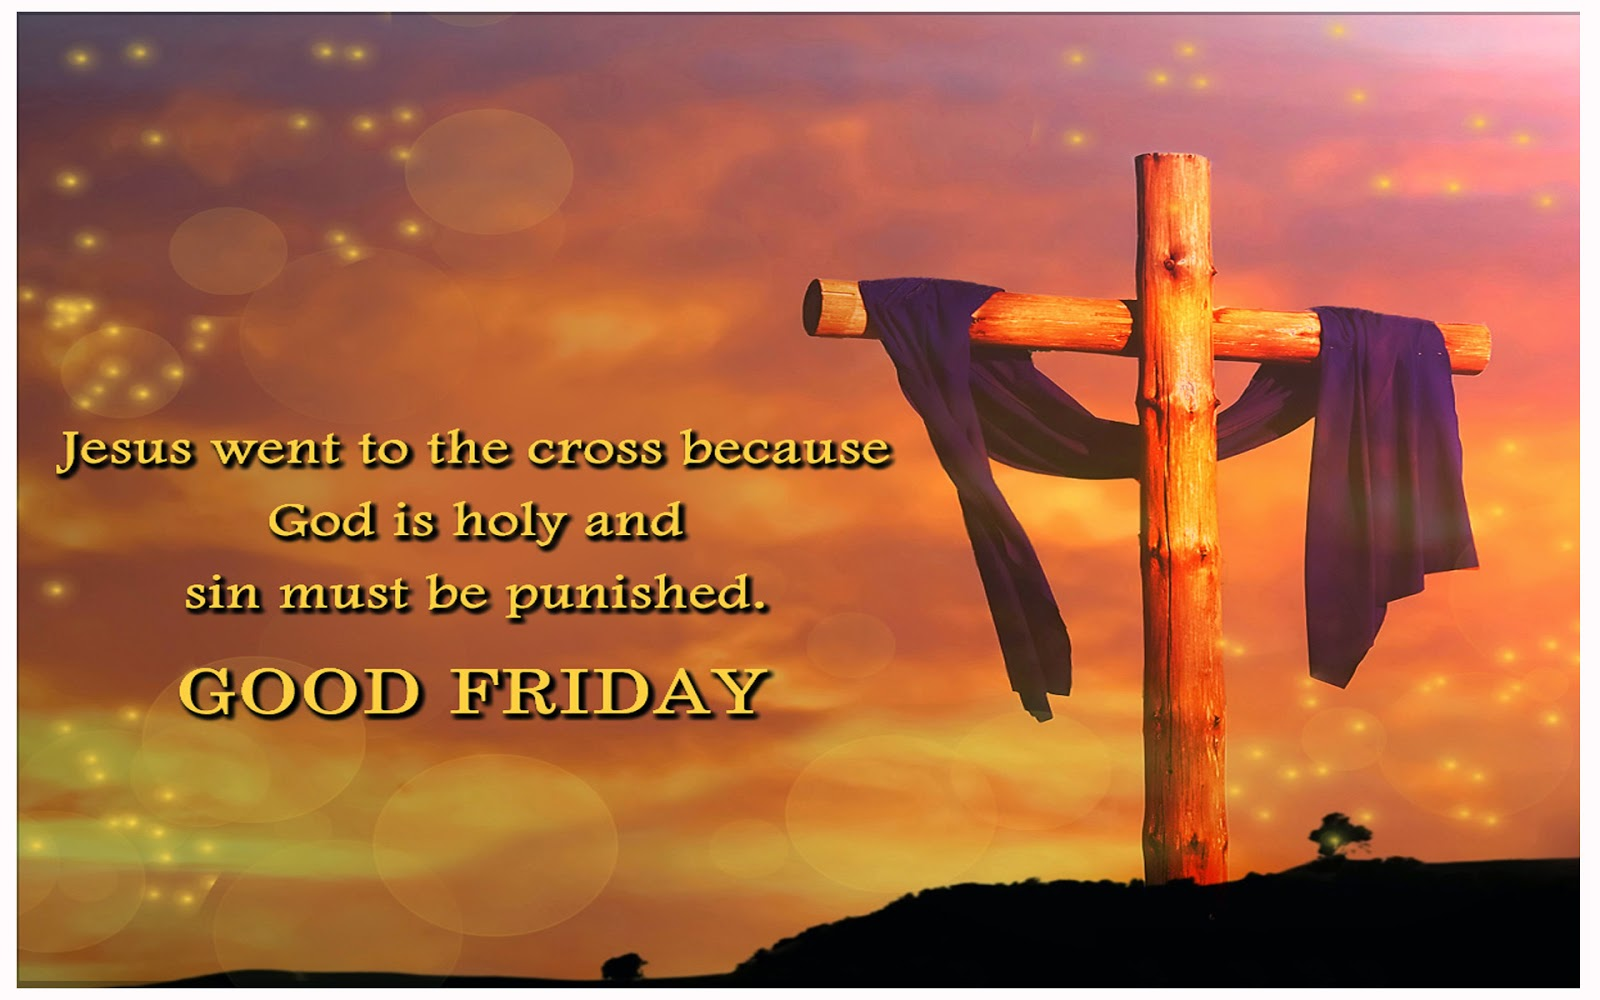 GOOD FRIDAY QUOTES IMAGES BIBLE VERSES FACEBOOK PICTURES & WHATSAPP STATUS